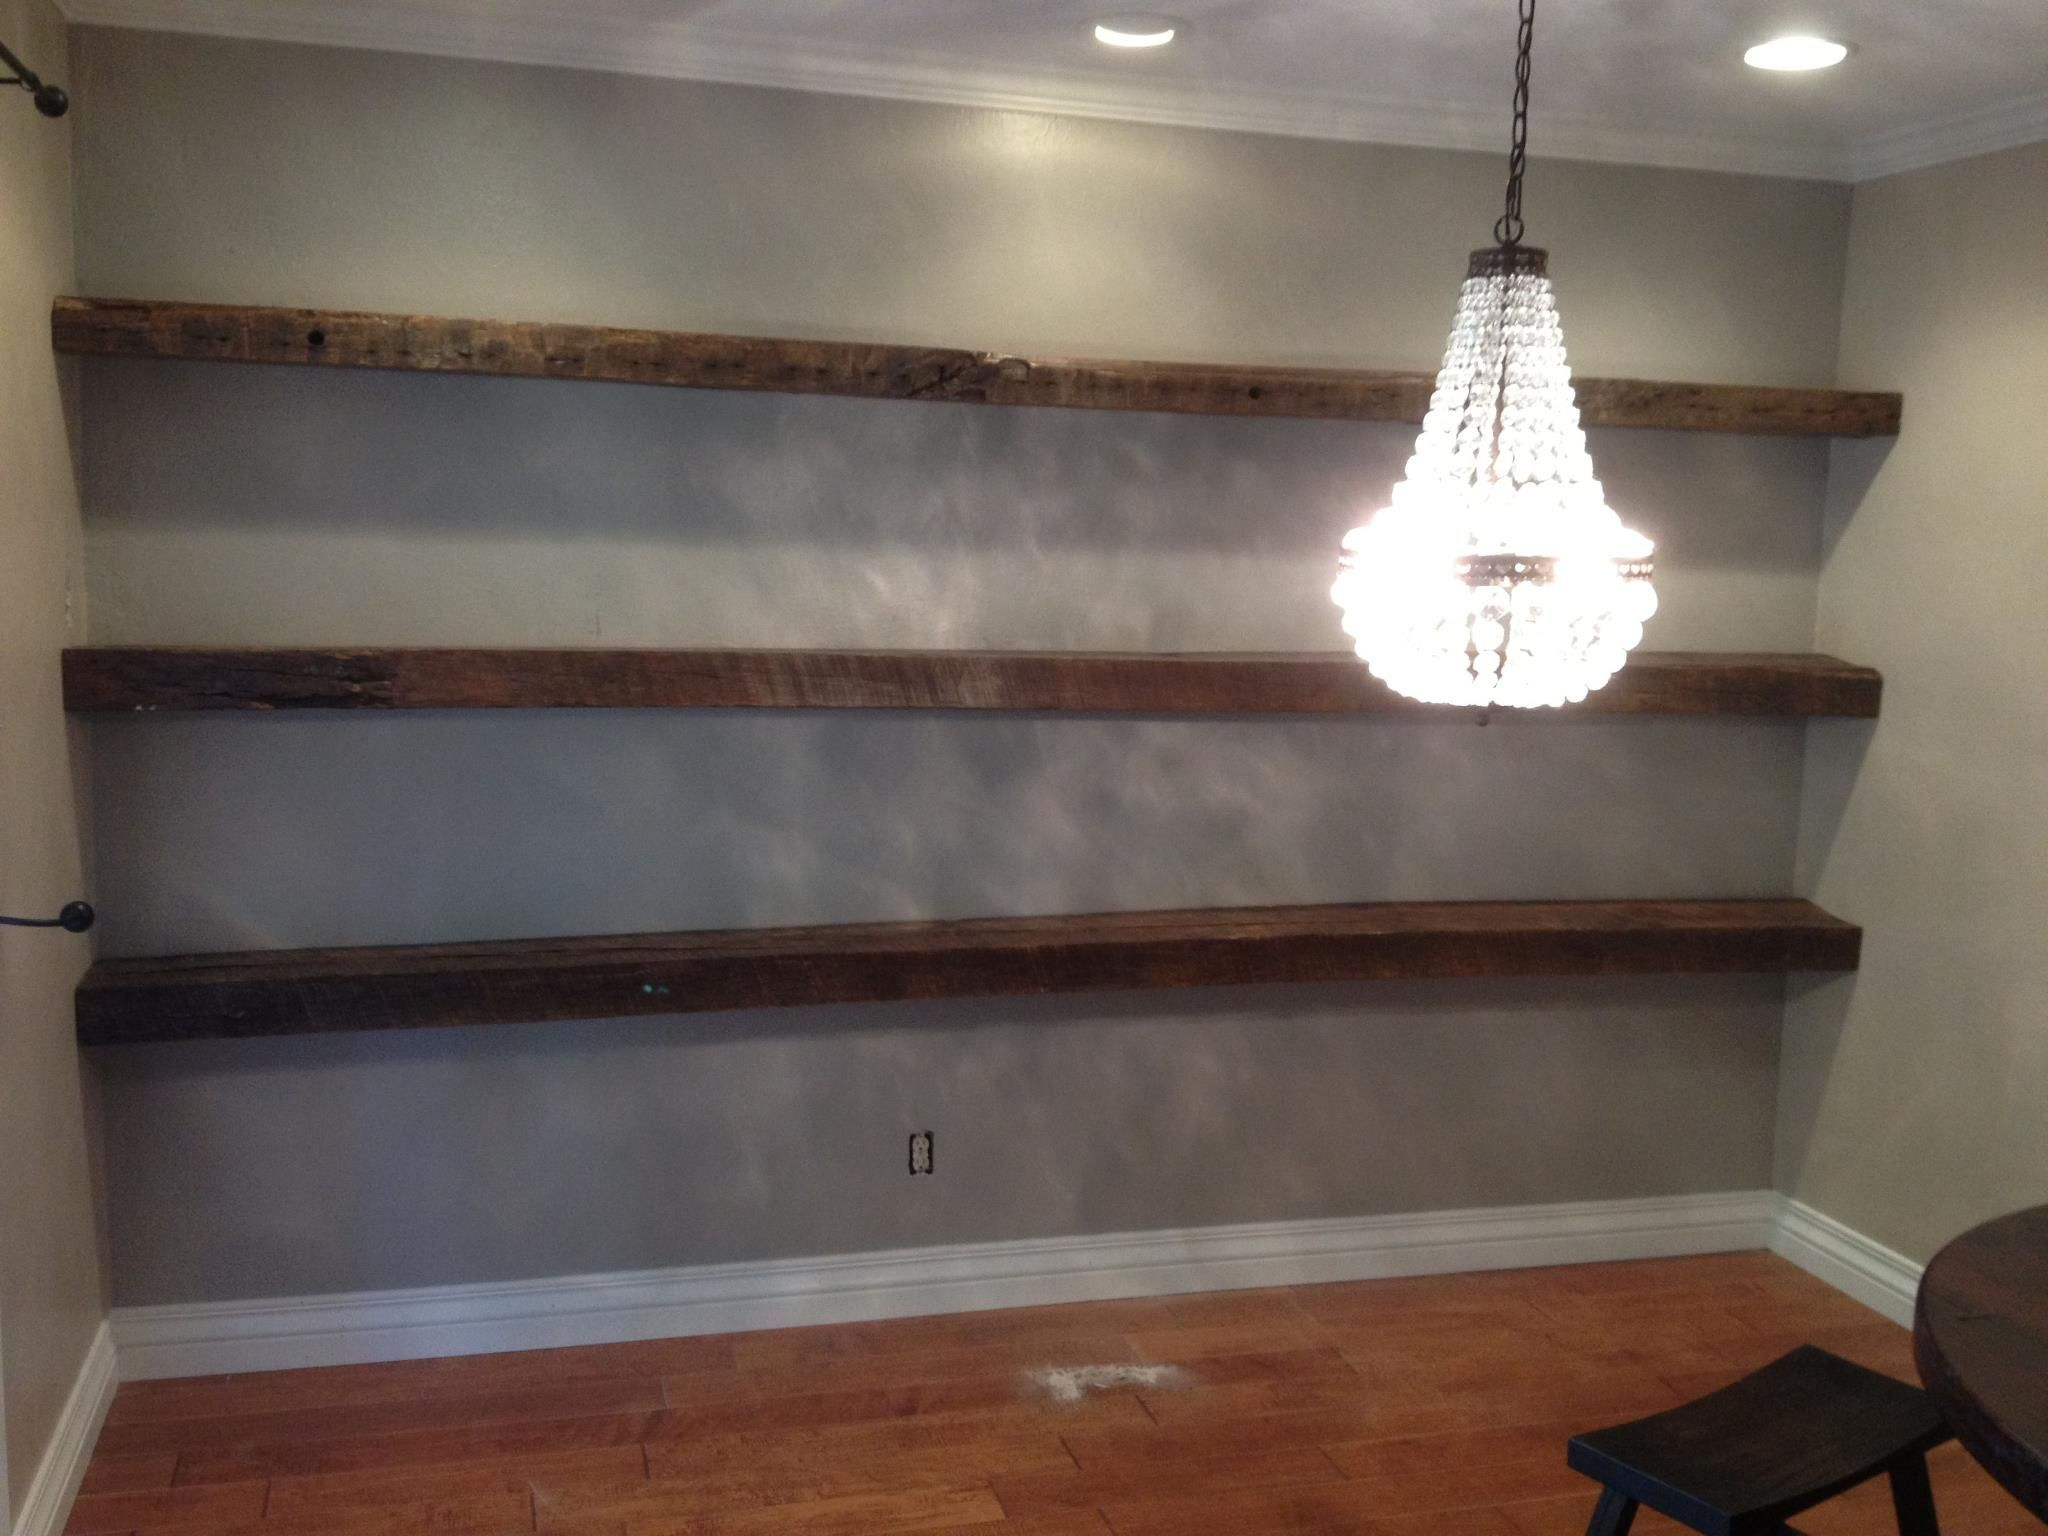 Marvelous Hanging Lamps With Awesome Wooden Floating Shelves Natural Looks For Decorate Rustic Floating Shelves Oak Floating Shelves Floating Shelves Bathroom